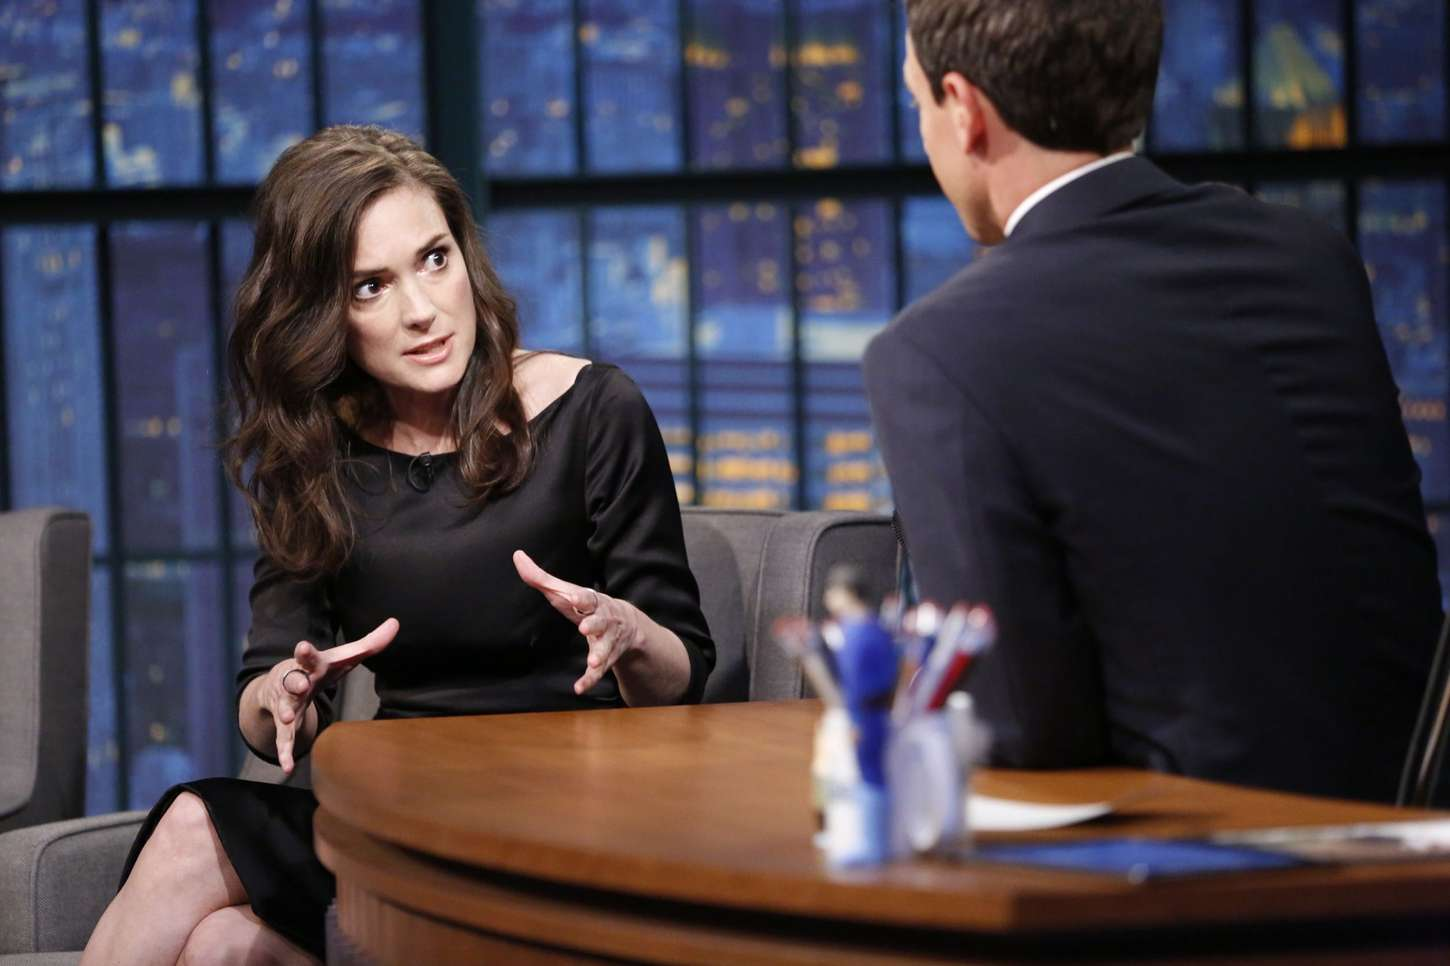 Winona Ryder Late Night with Seth Meyers in New York